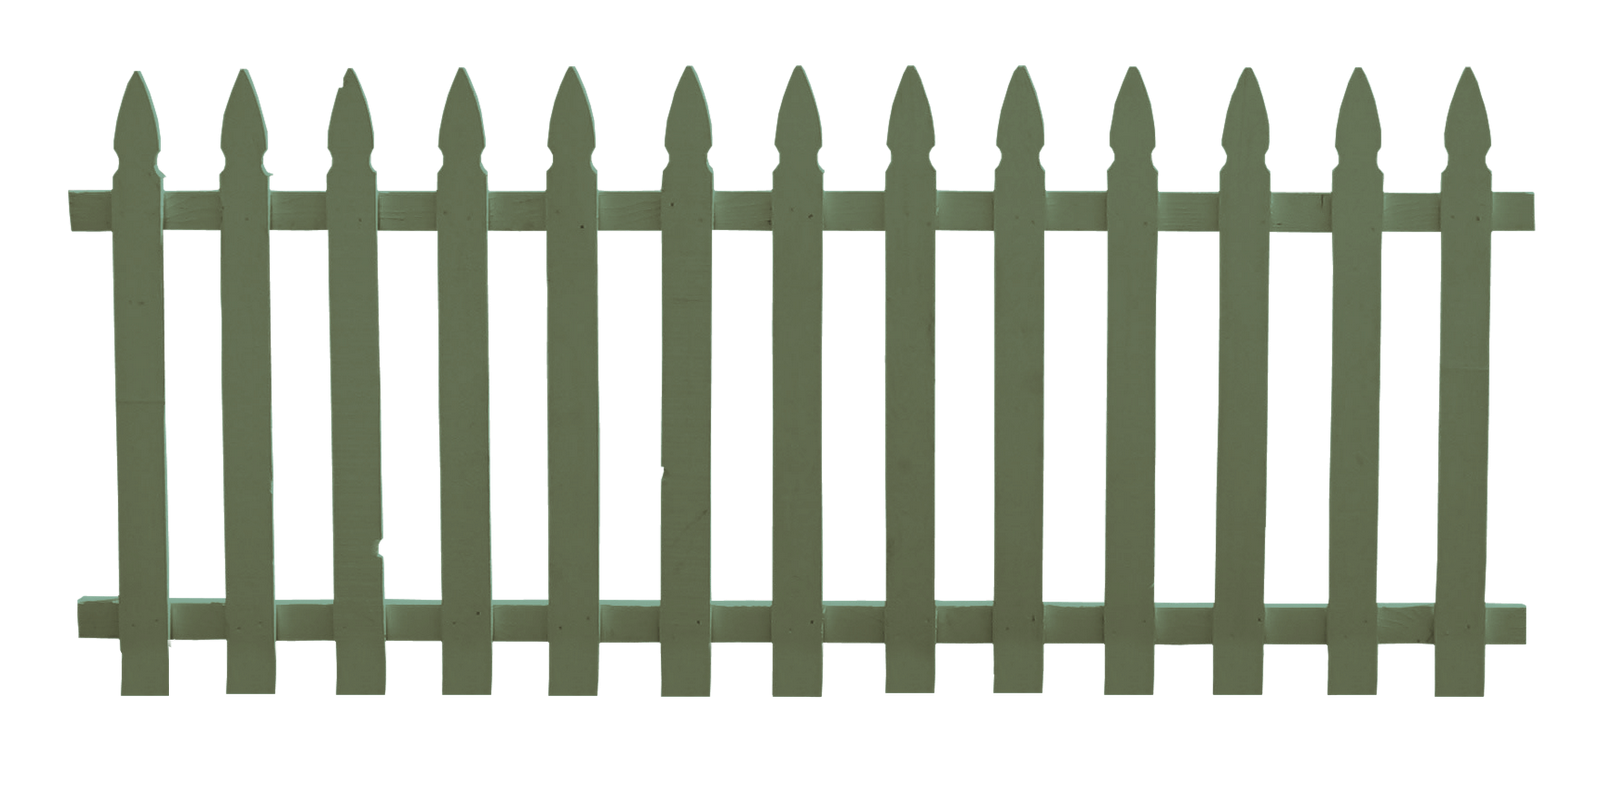 Halloween clipart gate. Free fence cliparts download